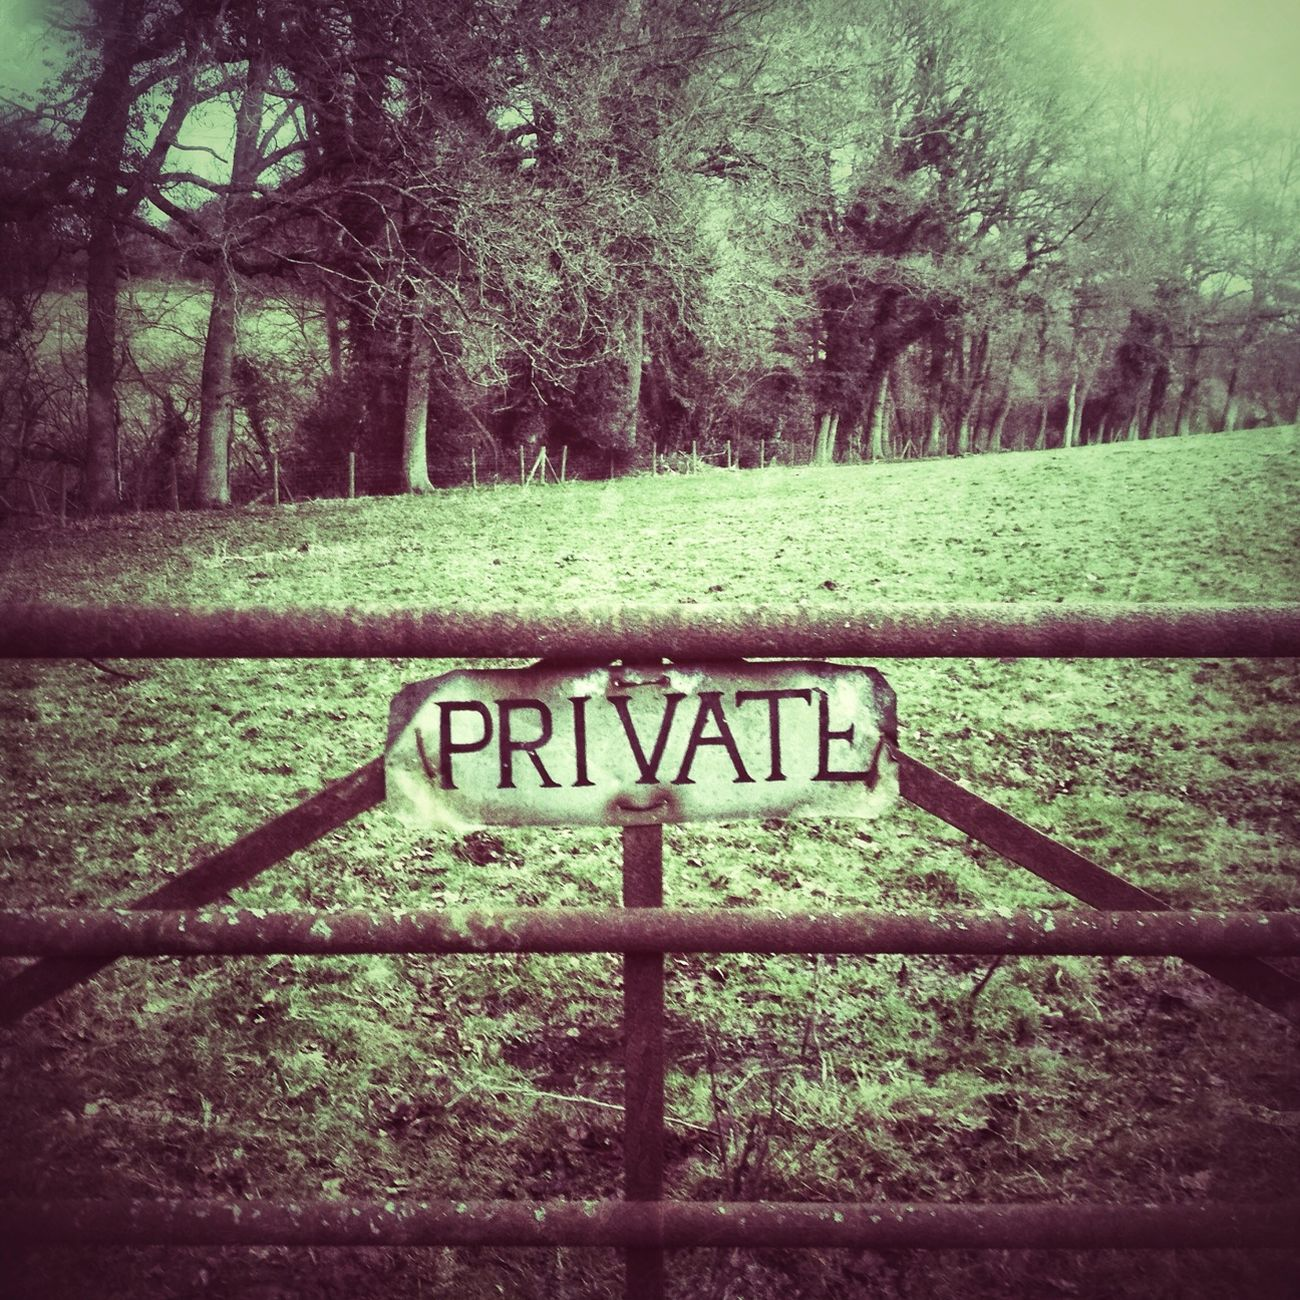 Private Party - trees only